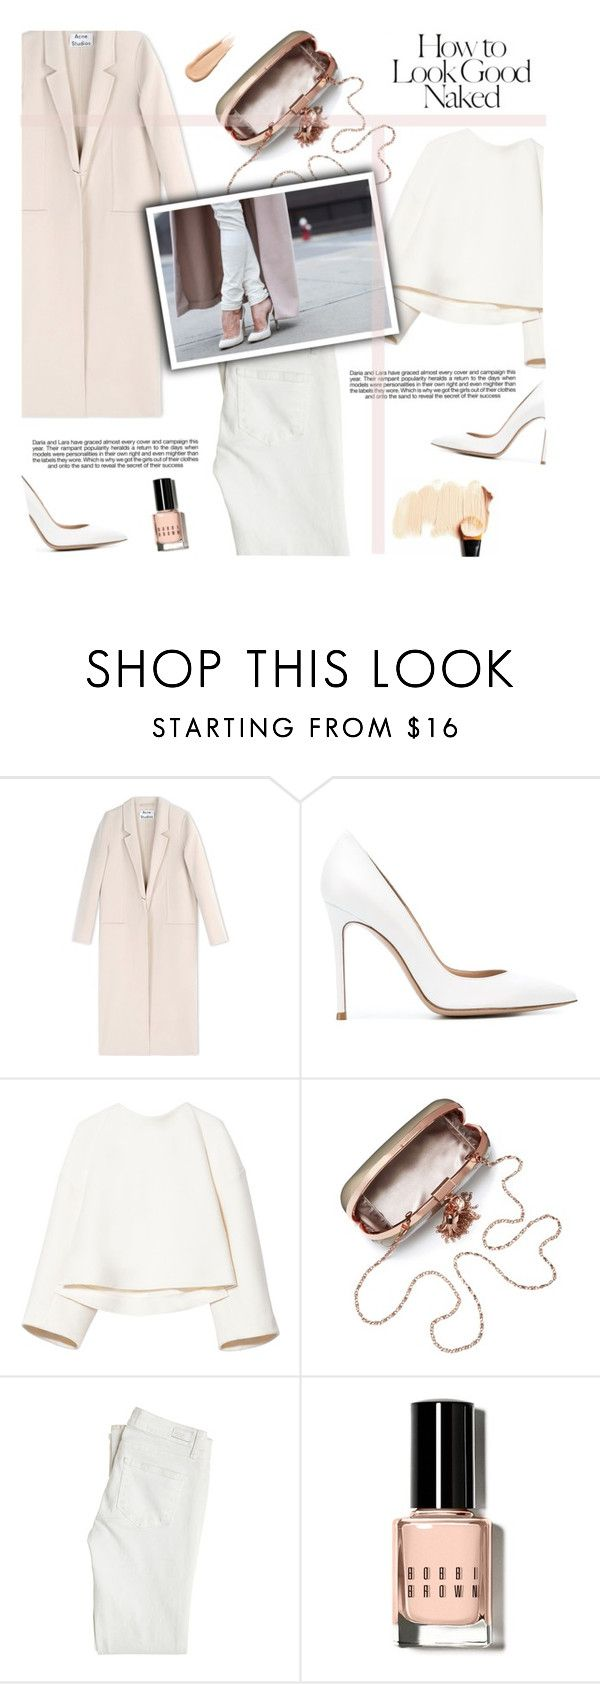 """""""Untitled #837"""" by intellectual-blackness ❤ liked on Polyvore featuring Acne Studios, Gianvito Rossi, Marni, Paige Denim, Industrie, Bobbi Brown Cosmetics, Hourglass Cosmetics, white, nude and whiteandnude"""